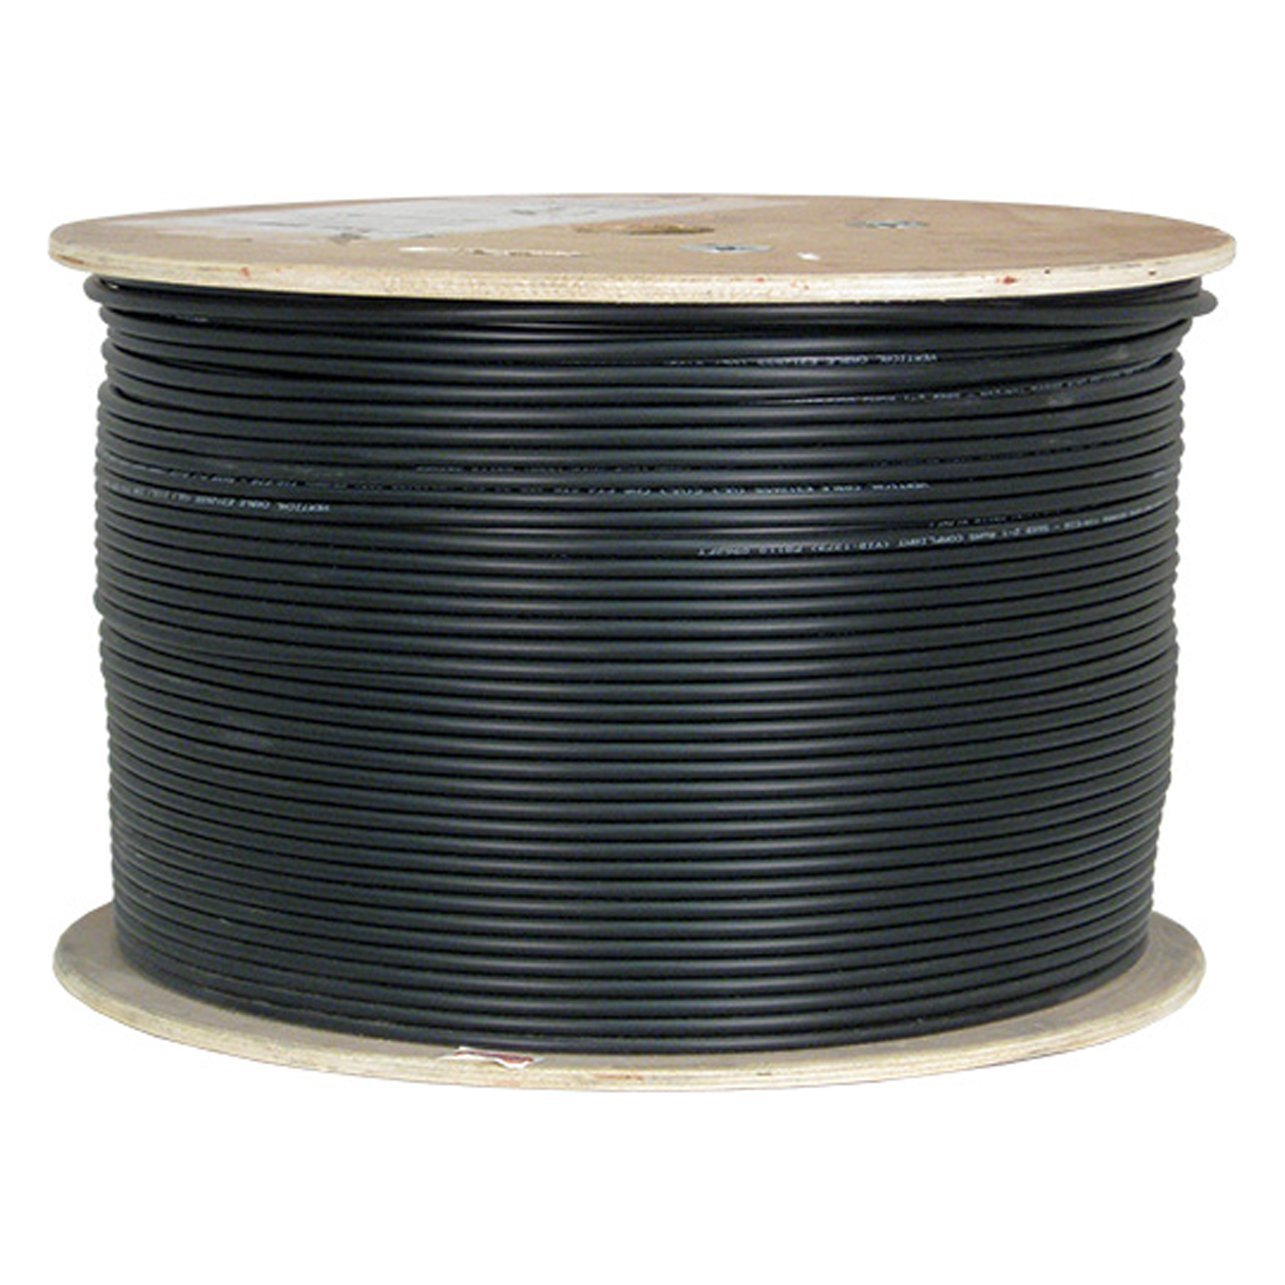 Vertical Cable CAT6 Bulk Ethernet Cable